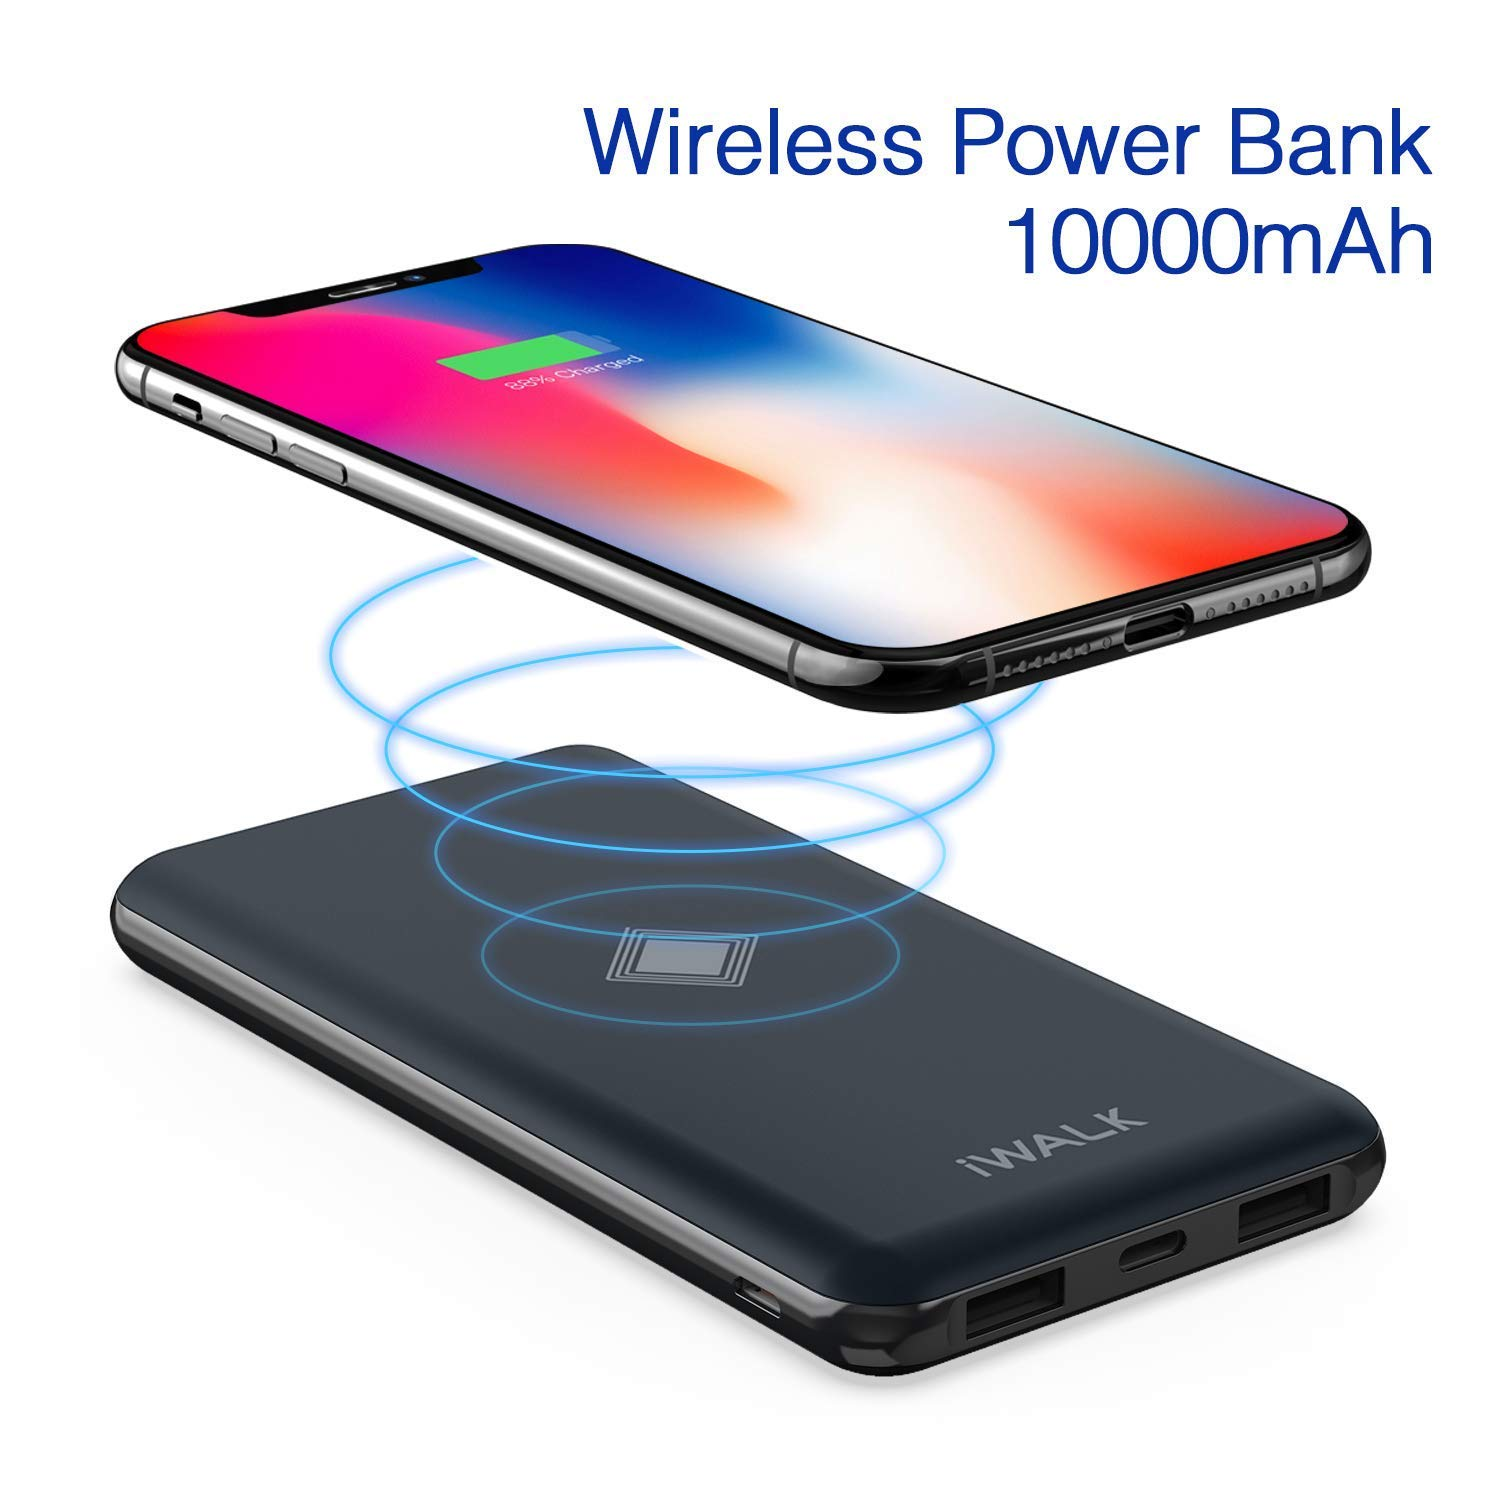 iWALK Wireless Portable Charger, 10000mAh Quick Charge 3.0 & PD 18W Power Bank with 4 Outputs & Dual Inputs, External Battery Compatible with iPhone ...